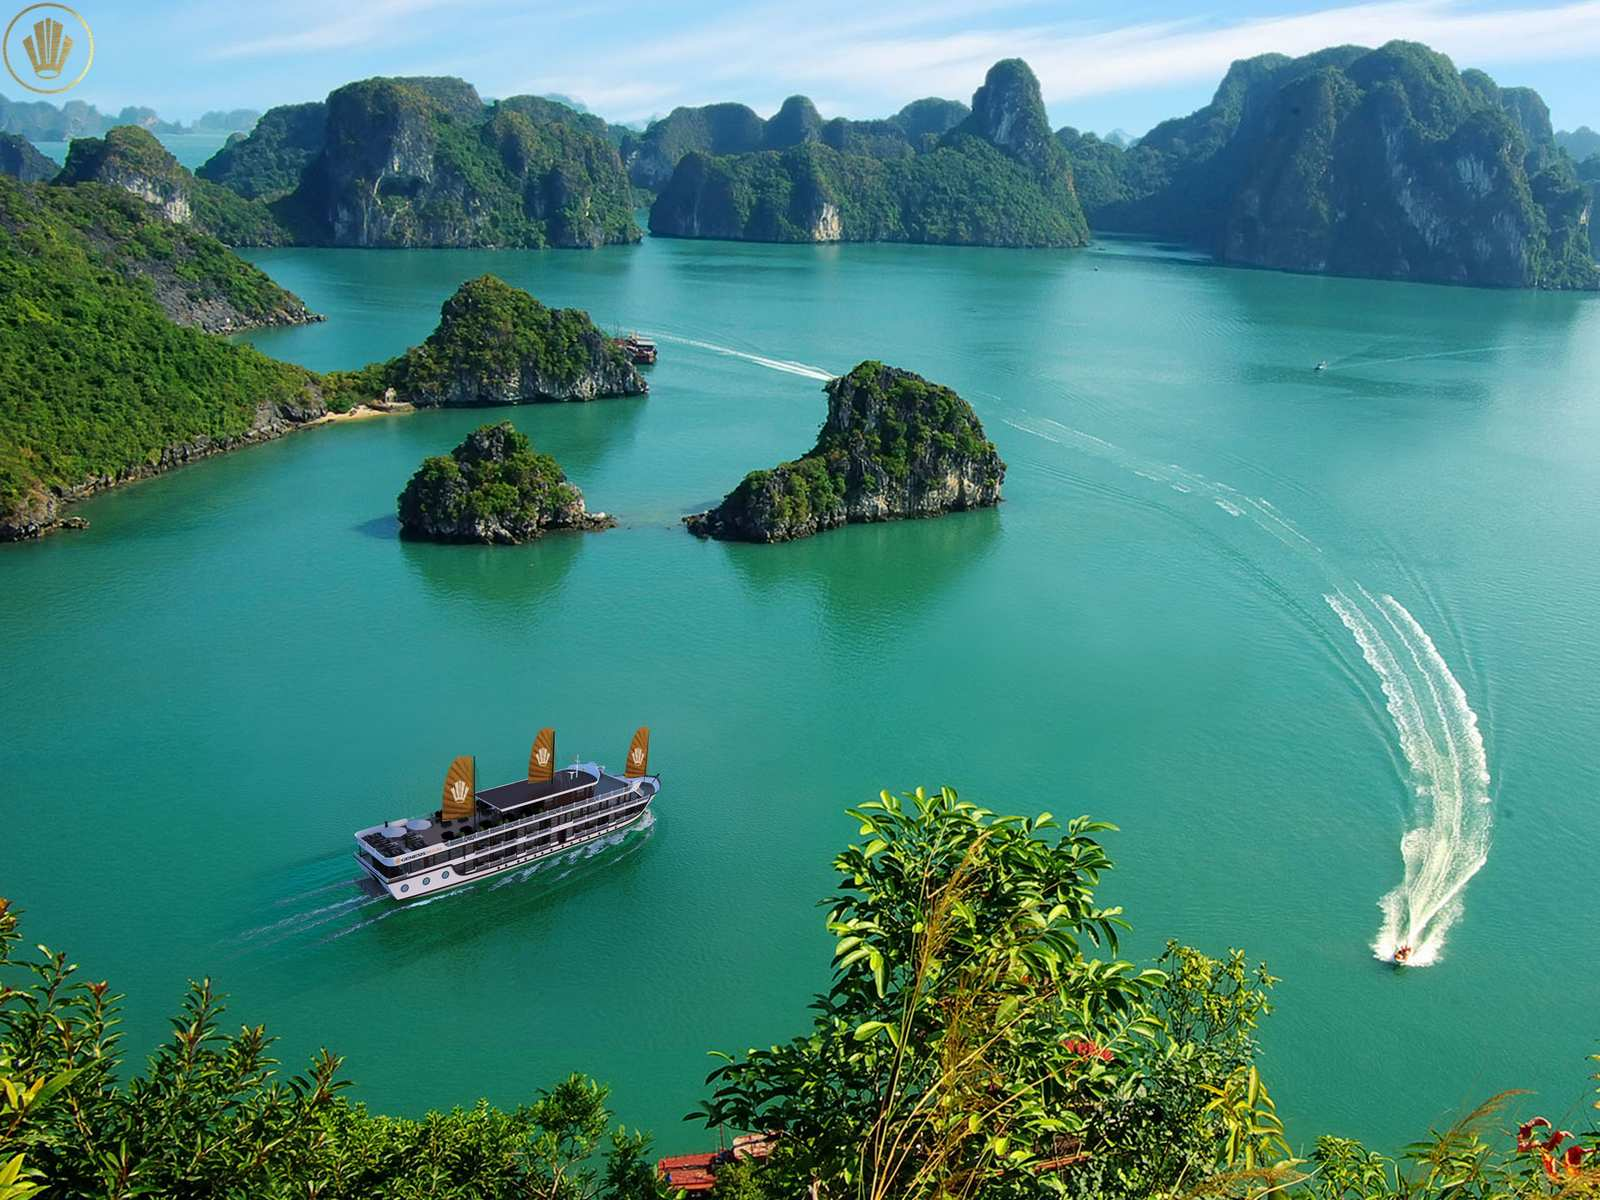 GENESIS REGAL CRUISE Ha Long Bay 2 Days 1 night